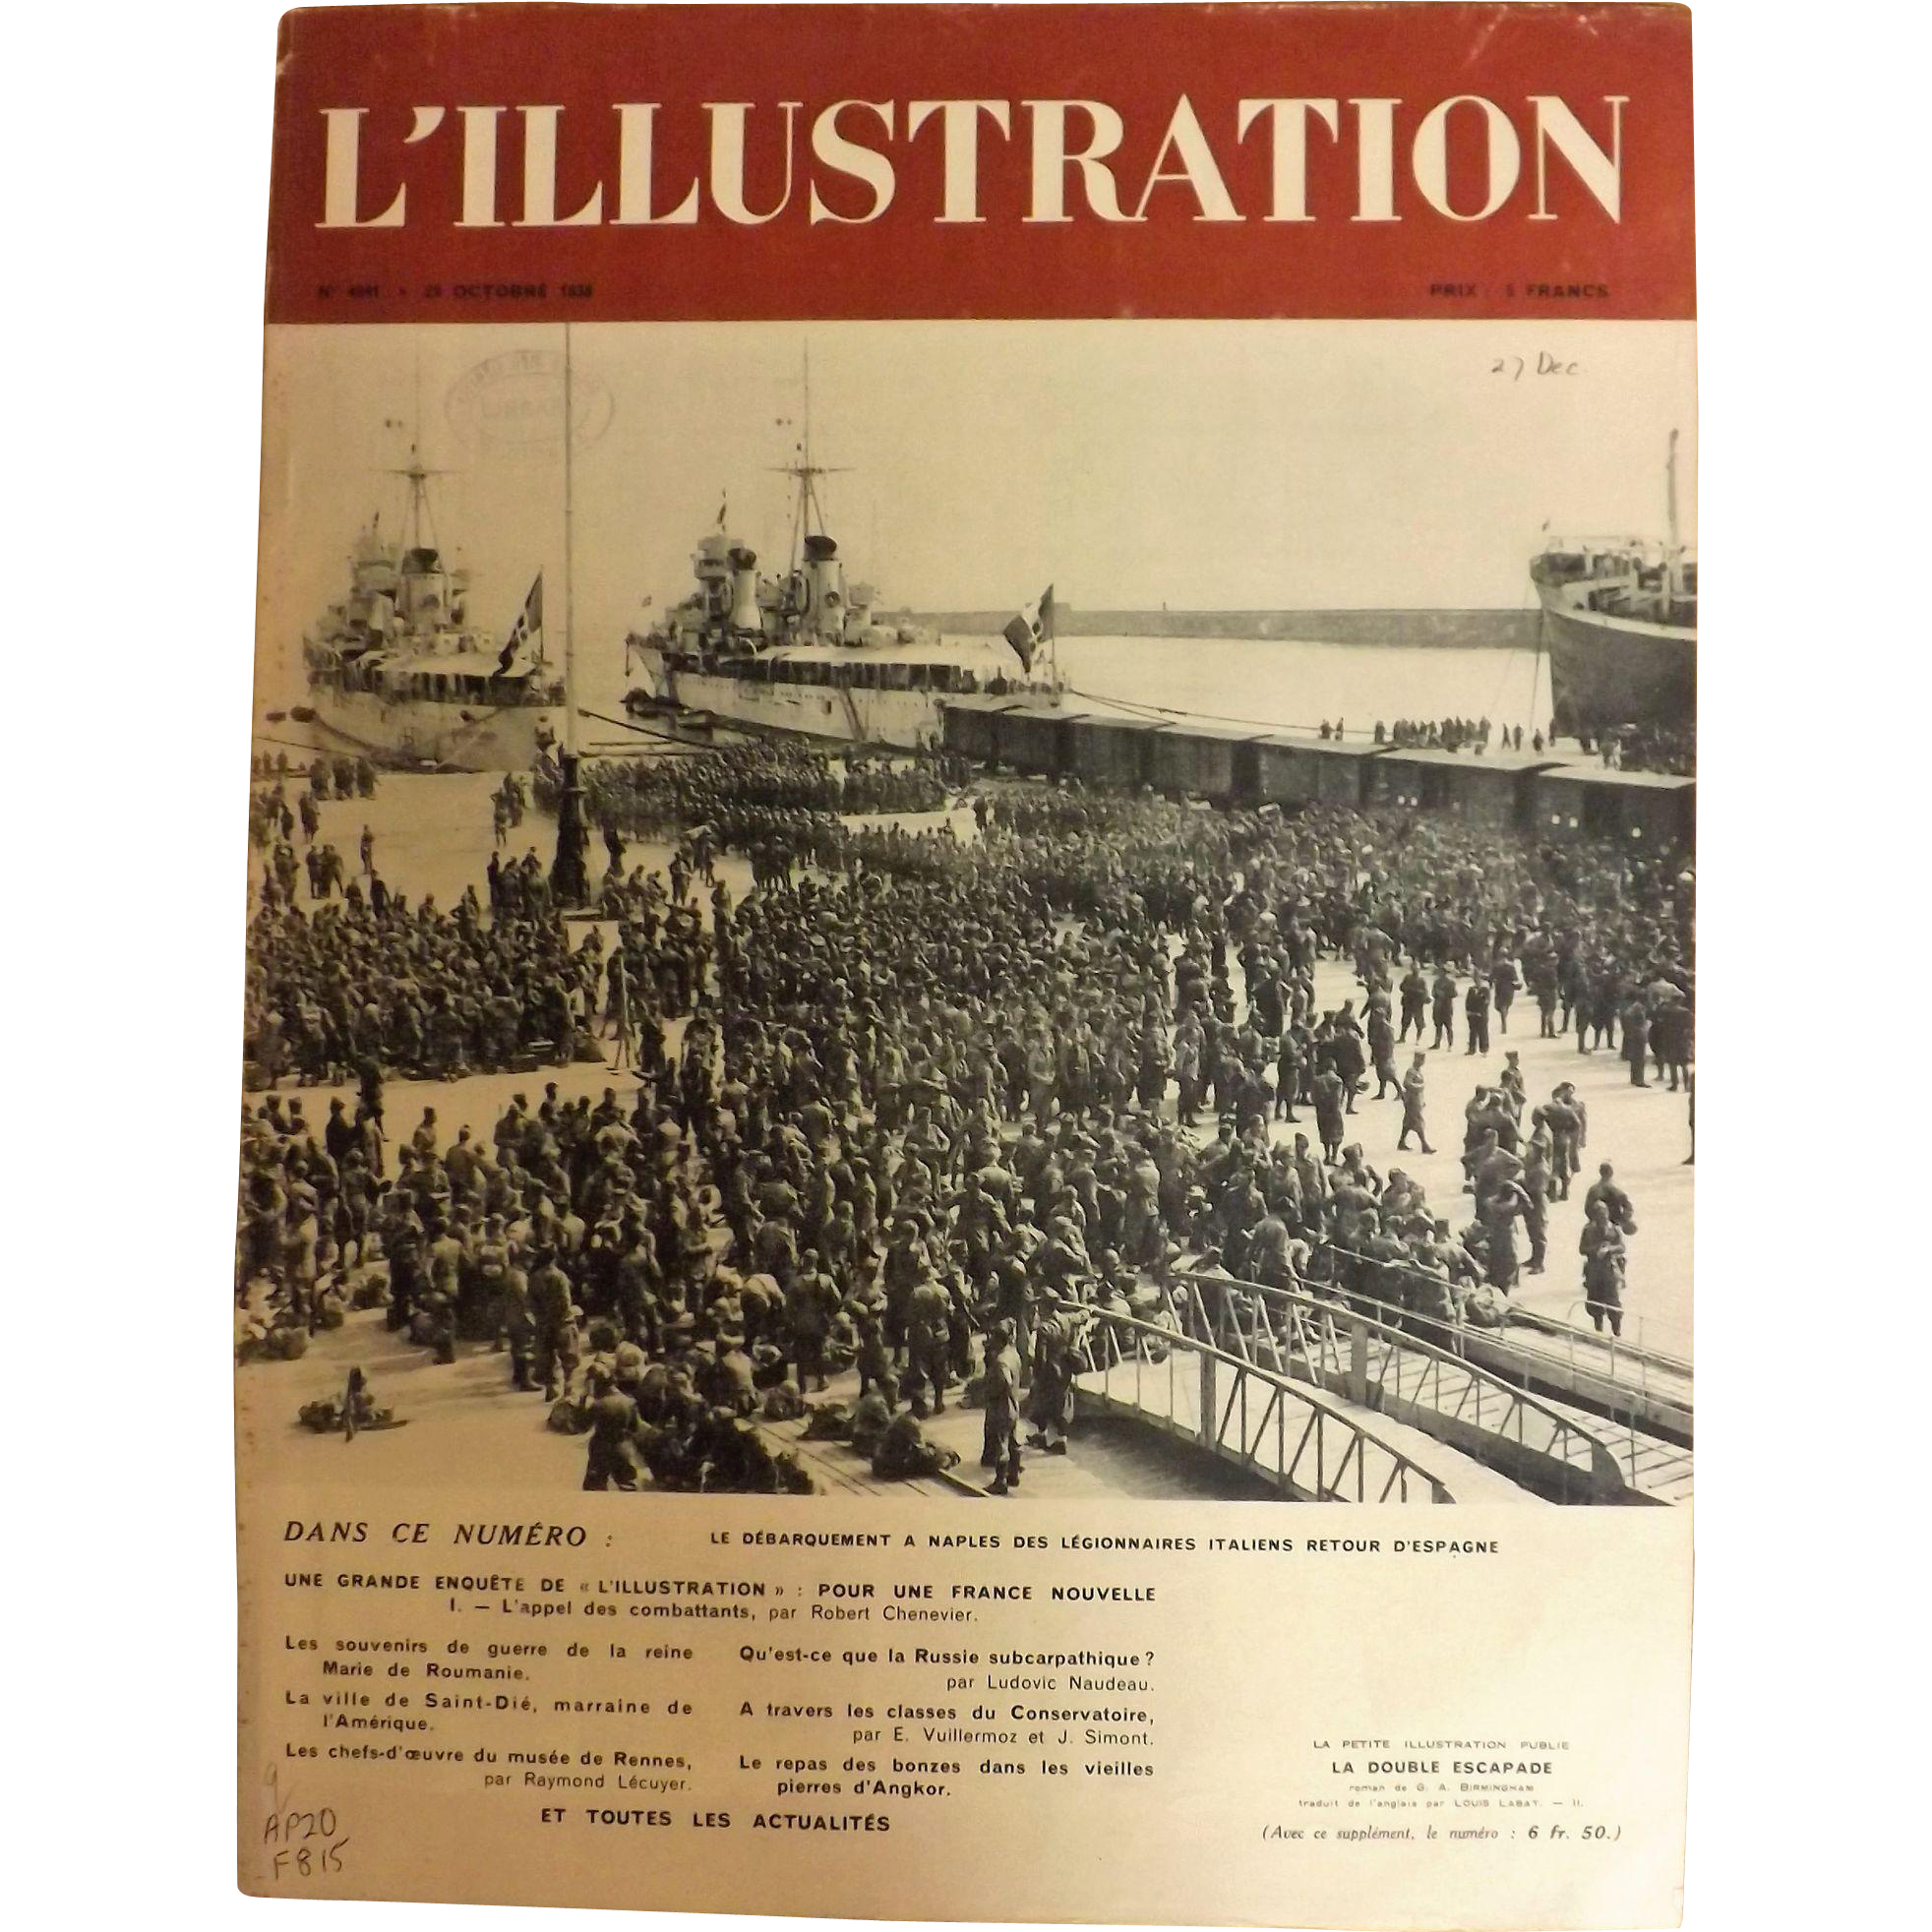 L'IIlustration French Magazine Original  FRONT COVER 1938 - Italian Legionnaires at Naples